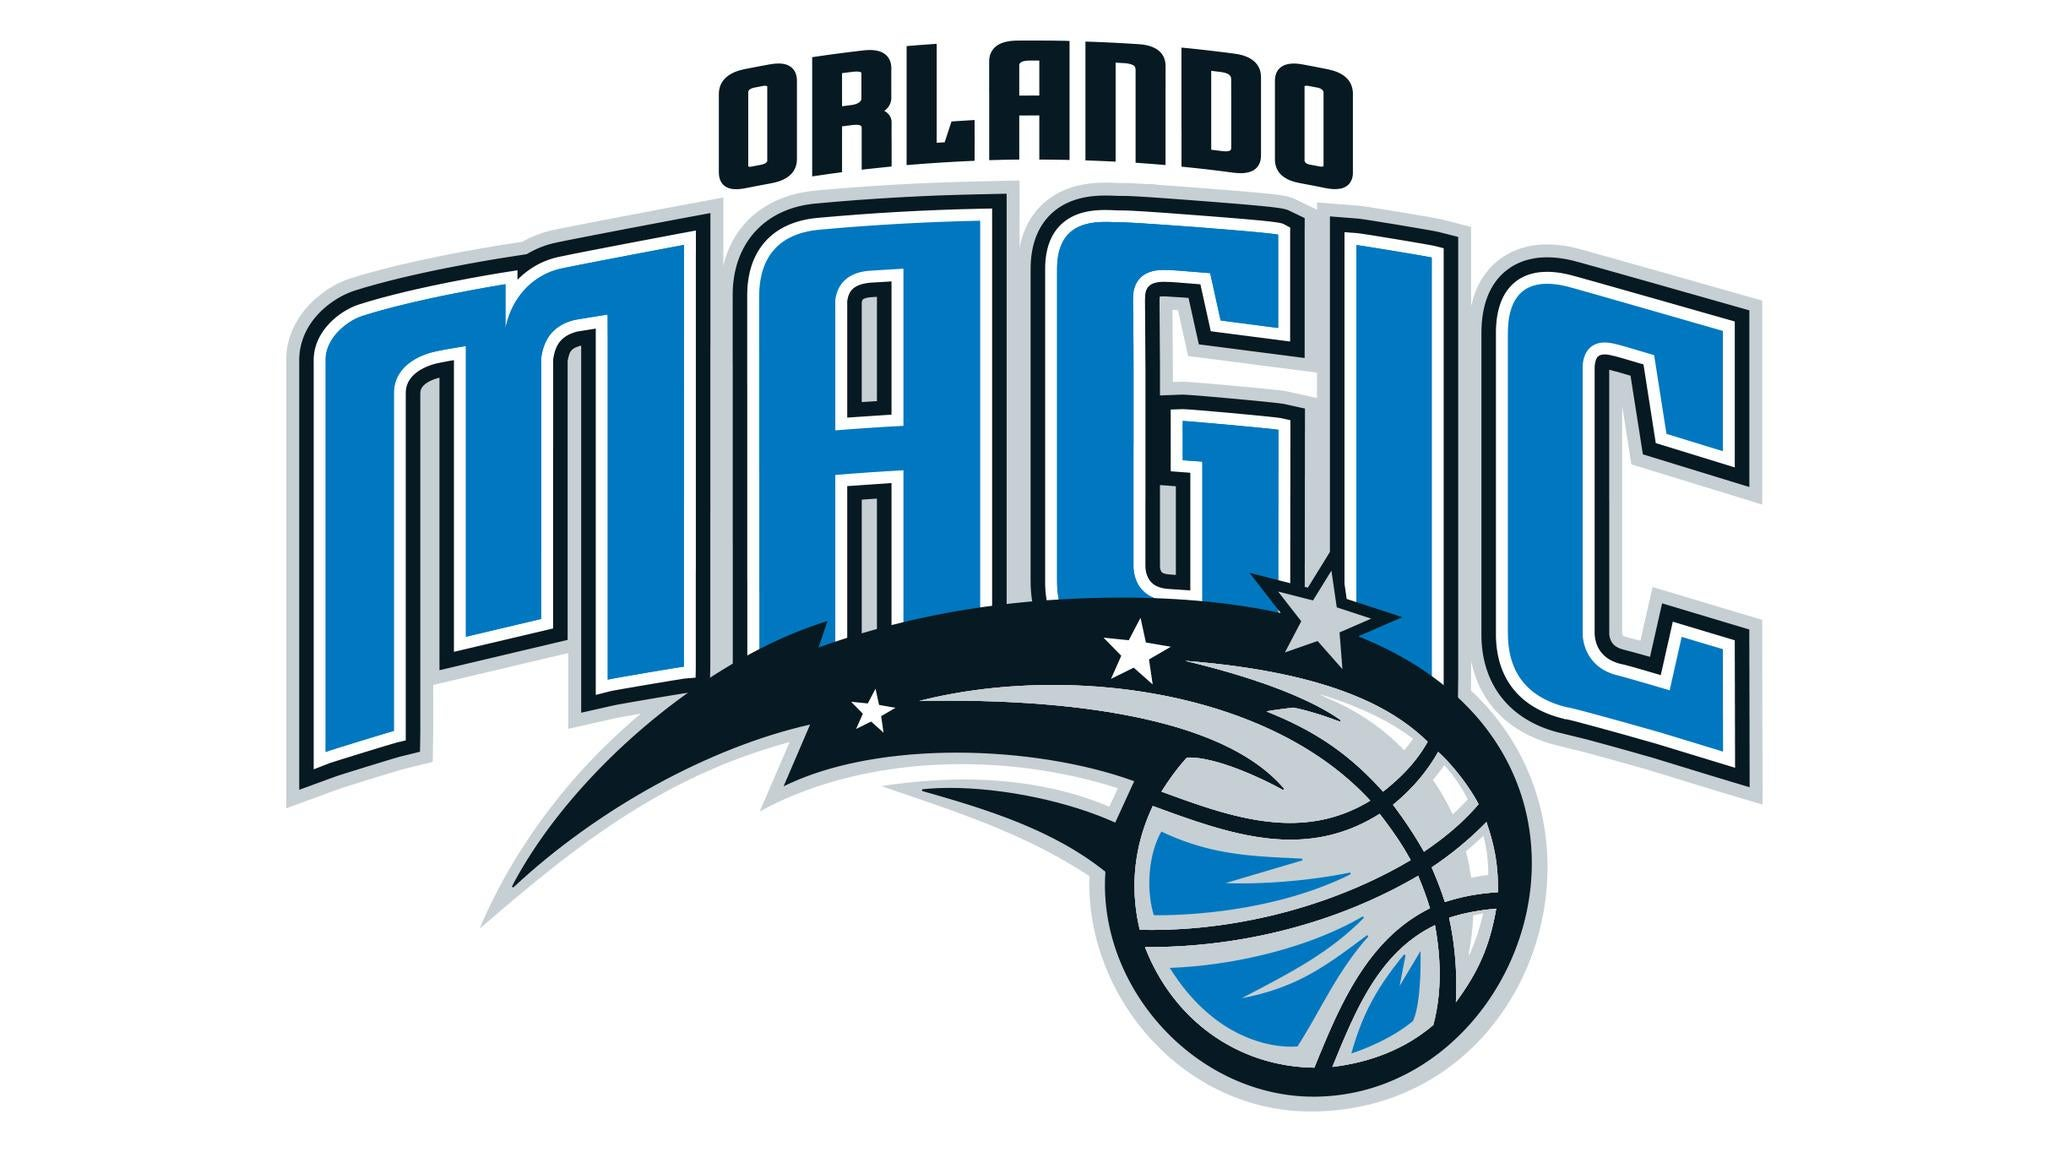 Orlando Magic vs. New York Knicks at Amway Center - Orlando, FL 32801